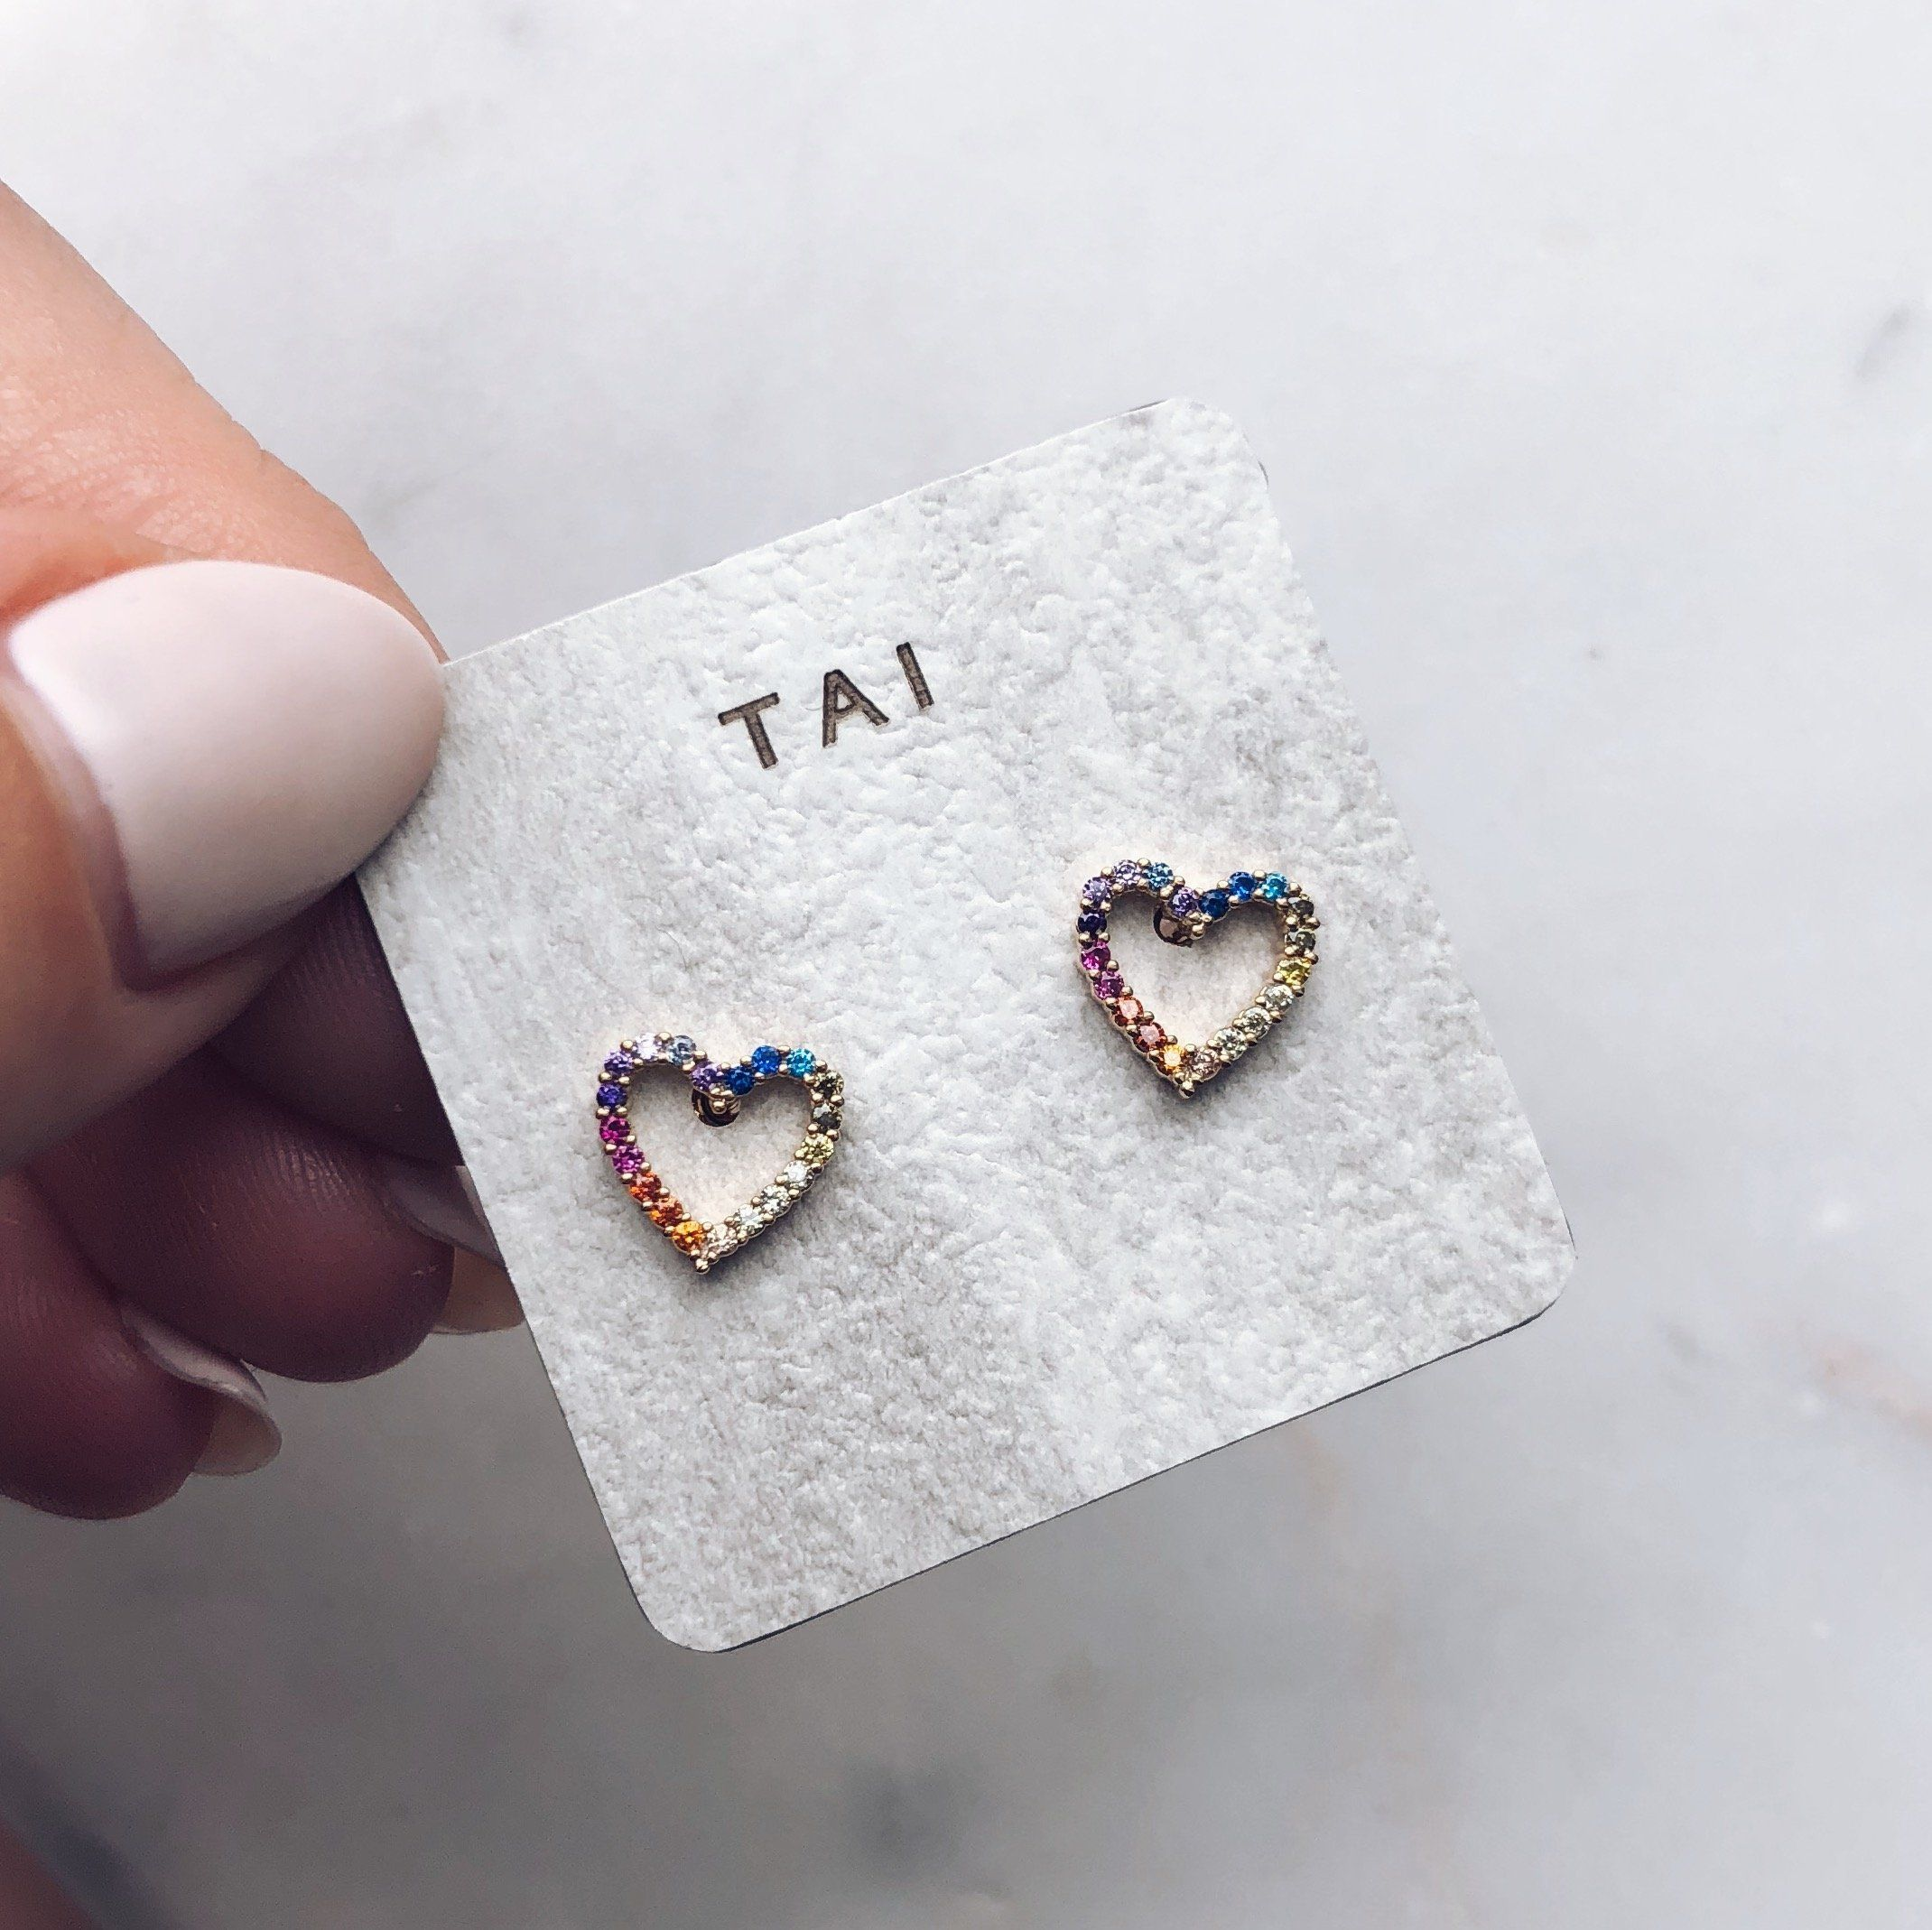 Feel The Love In These Cz Rainbow Heart Studs From Tai Jewelry Sterling Silver Posts 14k Yellow Gold Plated Br Base Rox 8 2mm X 5mm Hearts Micro